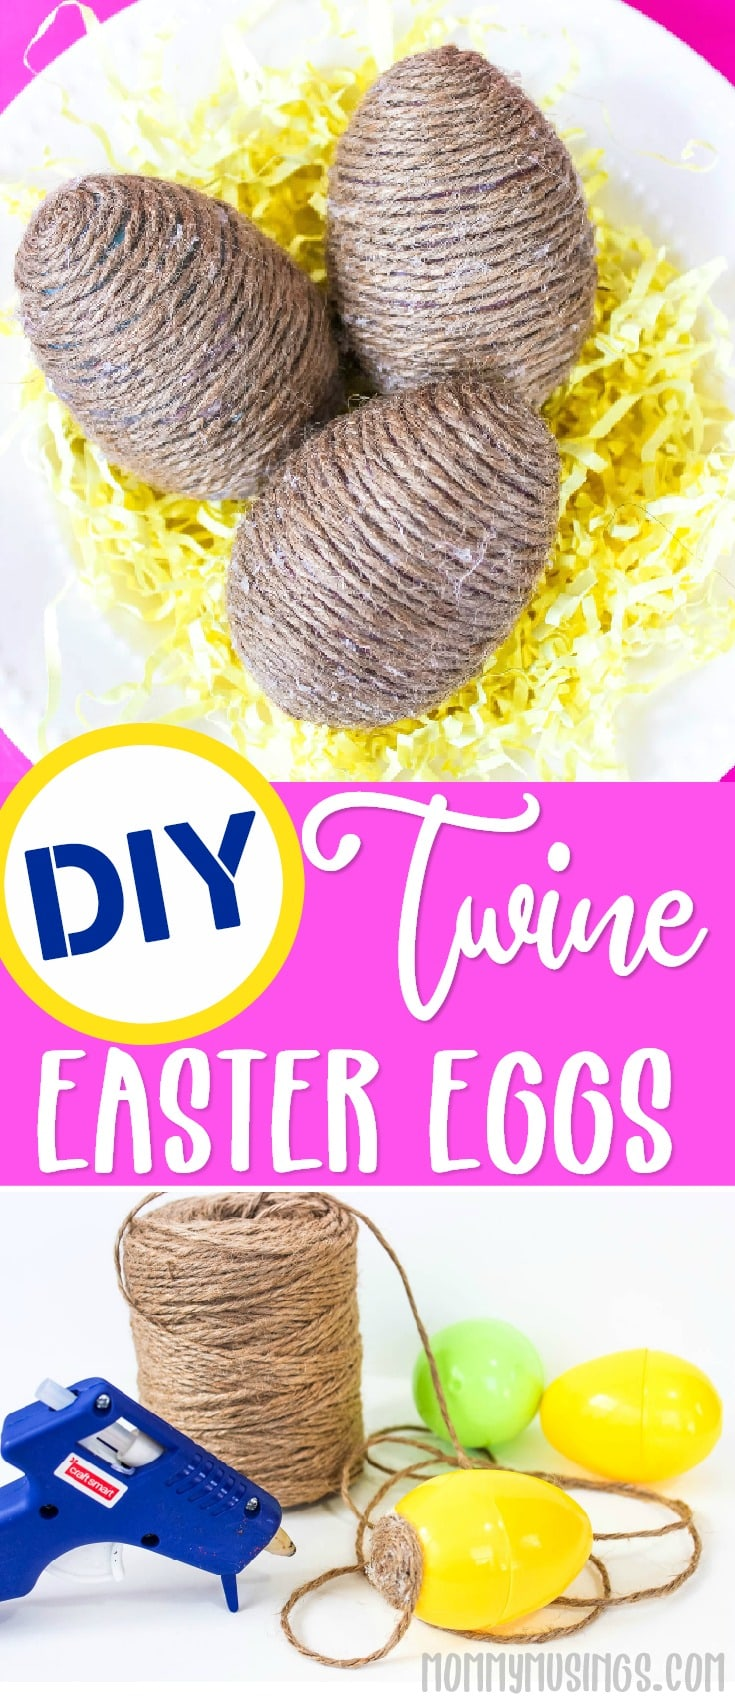 EASY DIY TWINE EASTER EGGS CRAFT